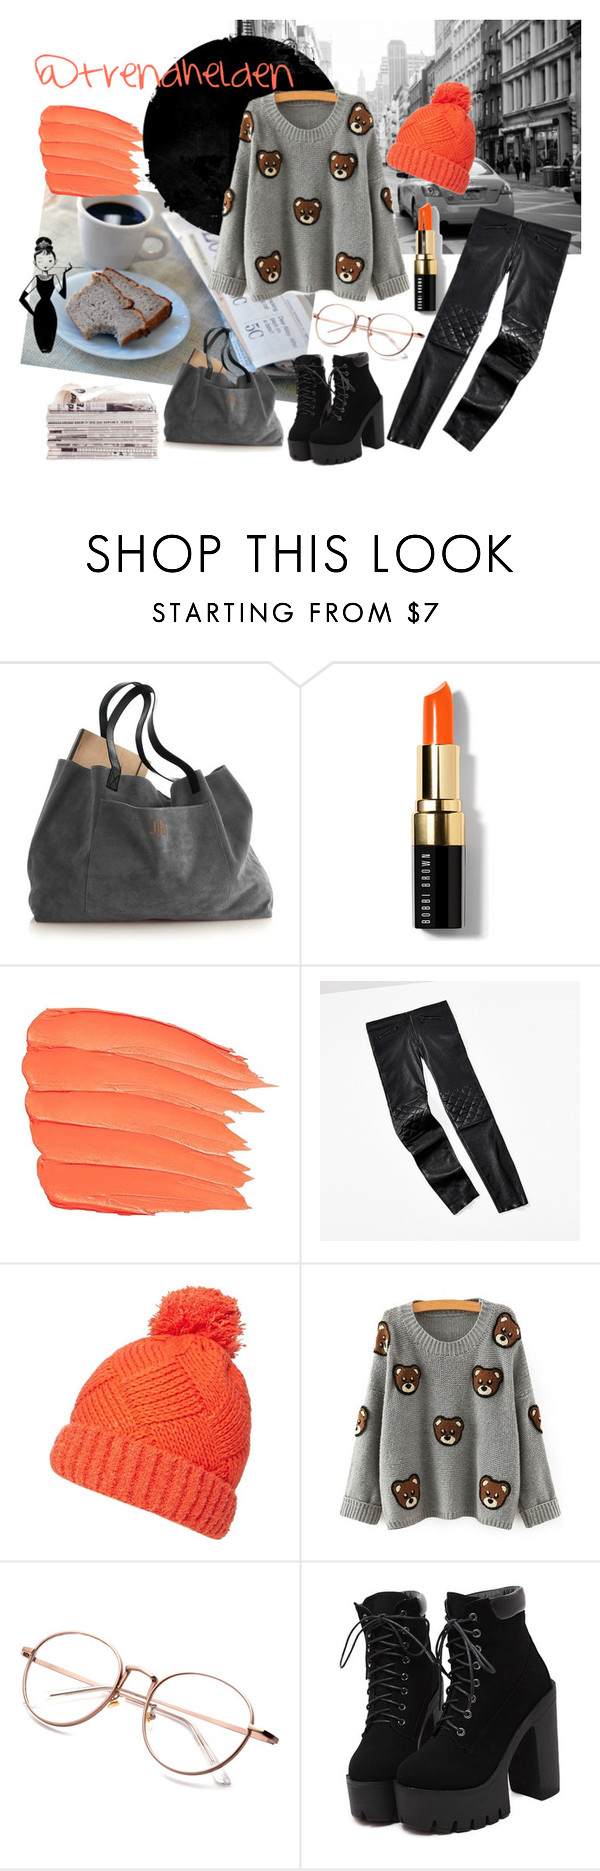 """""""Breakfast Time"""" by trendhelden on Polyvore featuring Mode, Bobbi Brown Cosmetics, Tommy Hilfiger, Dorothy Perkins und Tiffany & Co."""